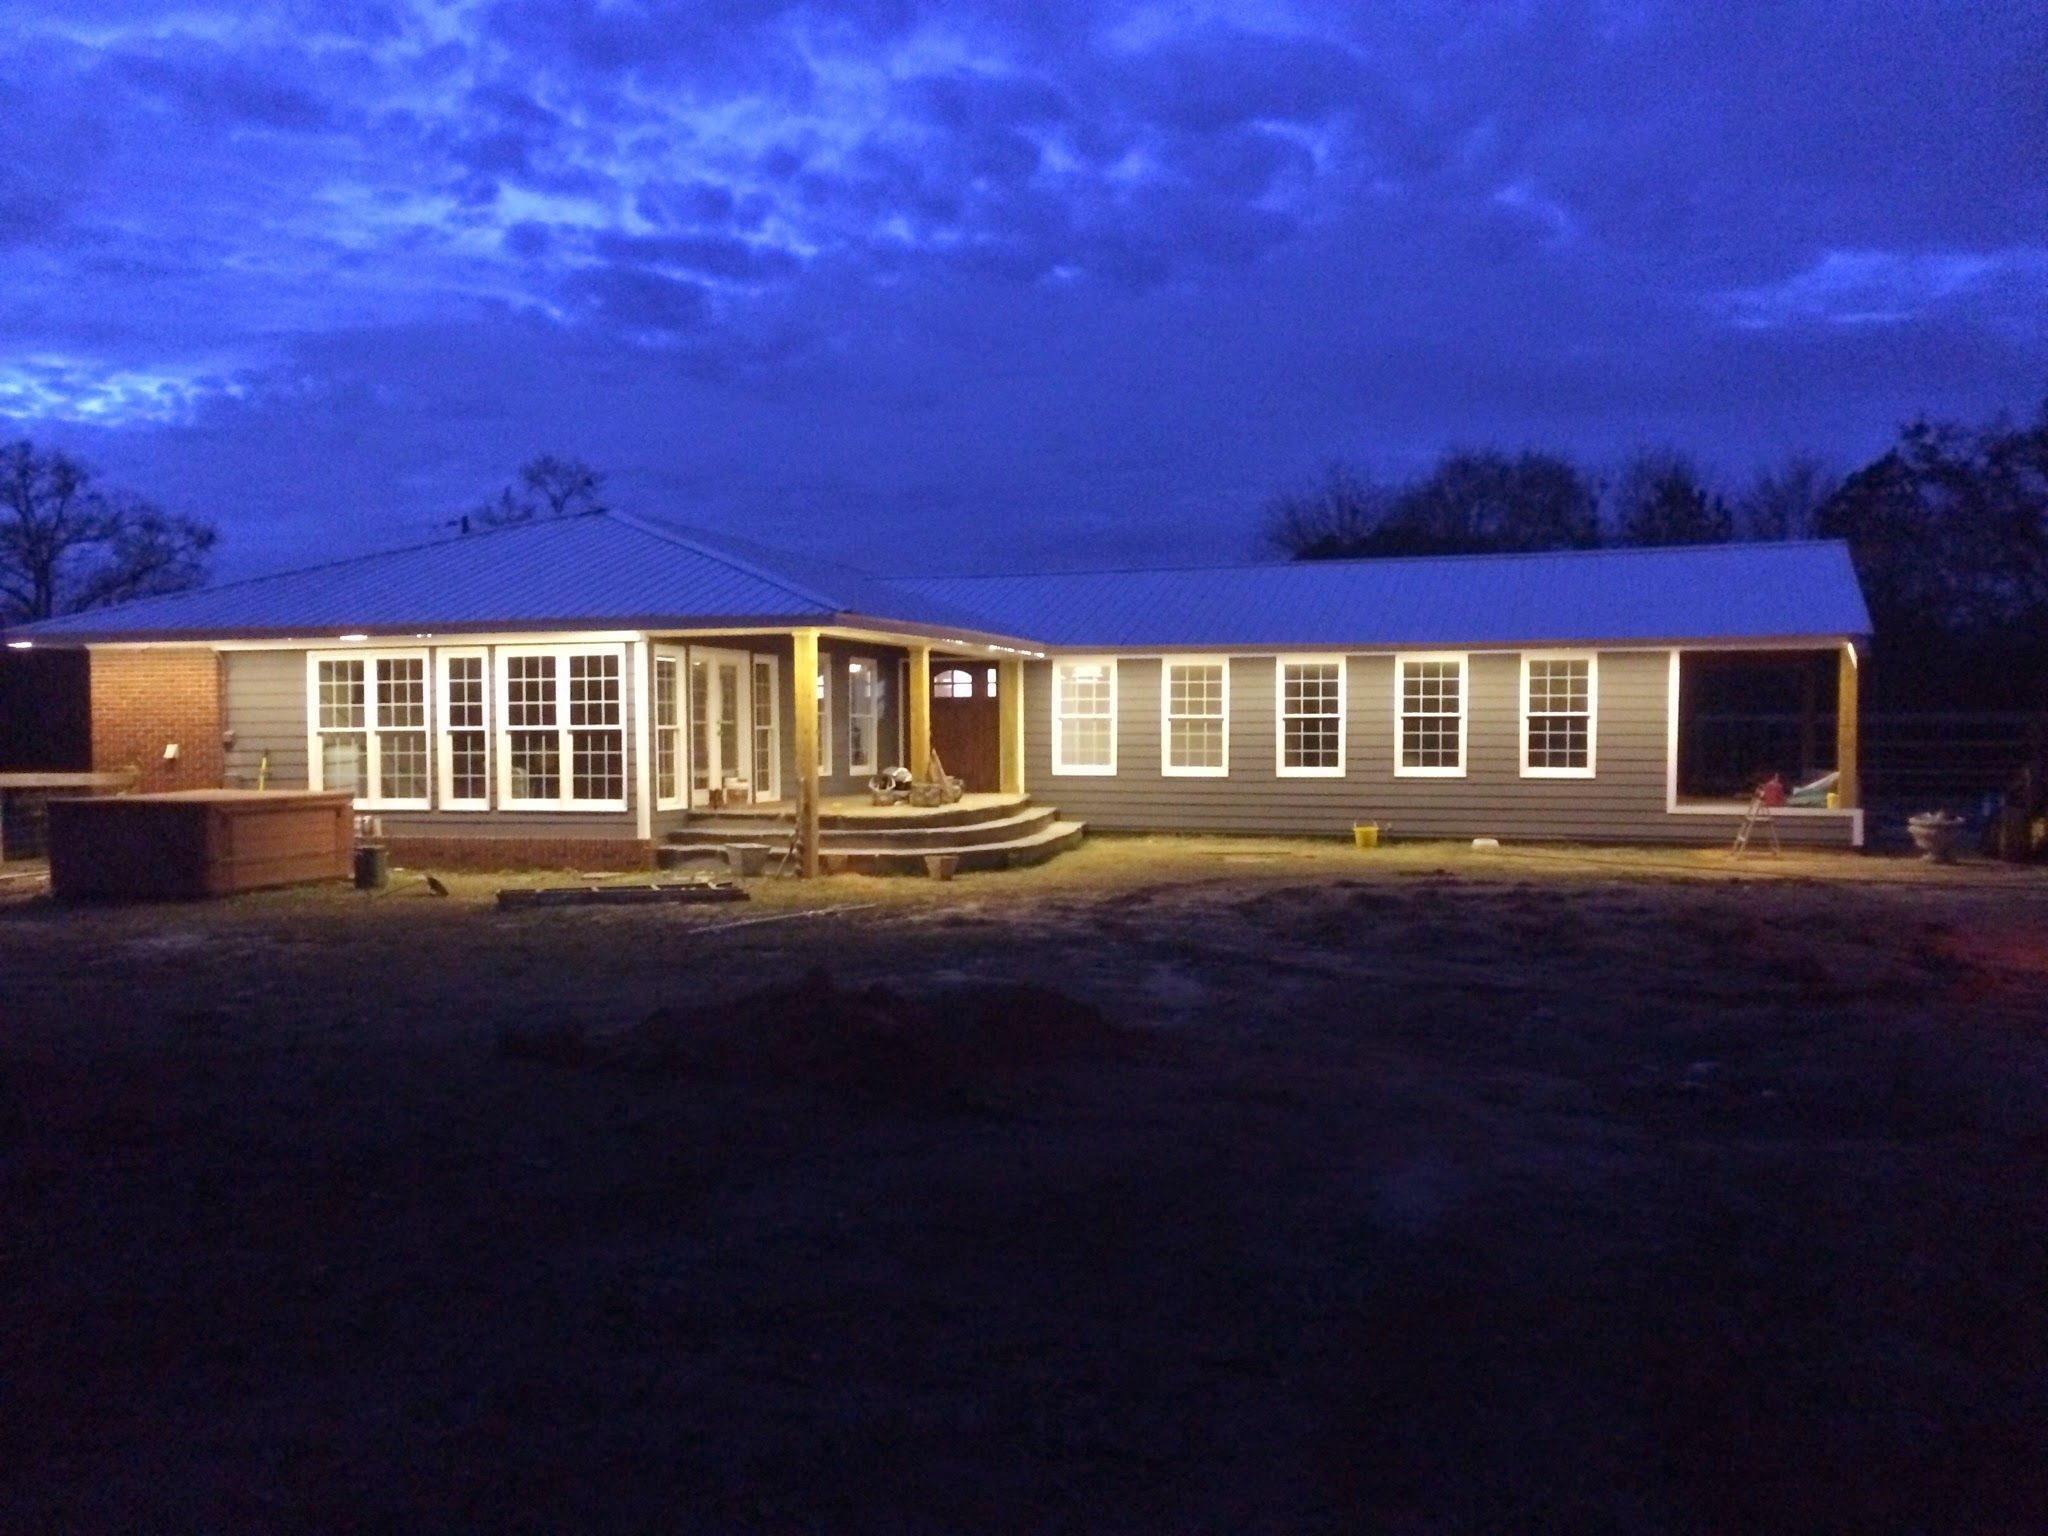 I Installed Led Lights Around The Eaves Of My House Led Outdoor Lighting Home Porch Led Tape Lighting